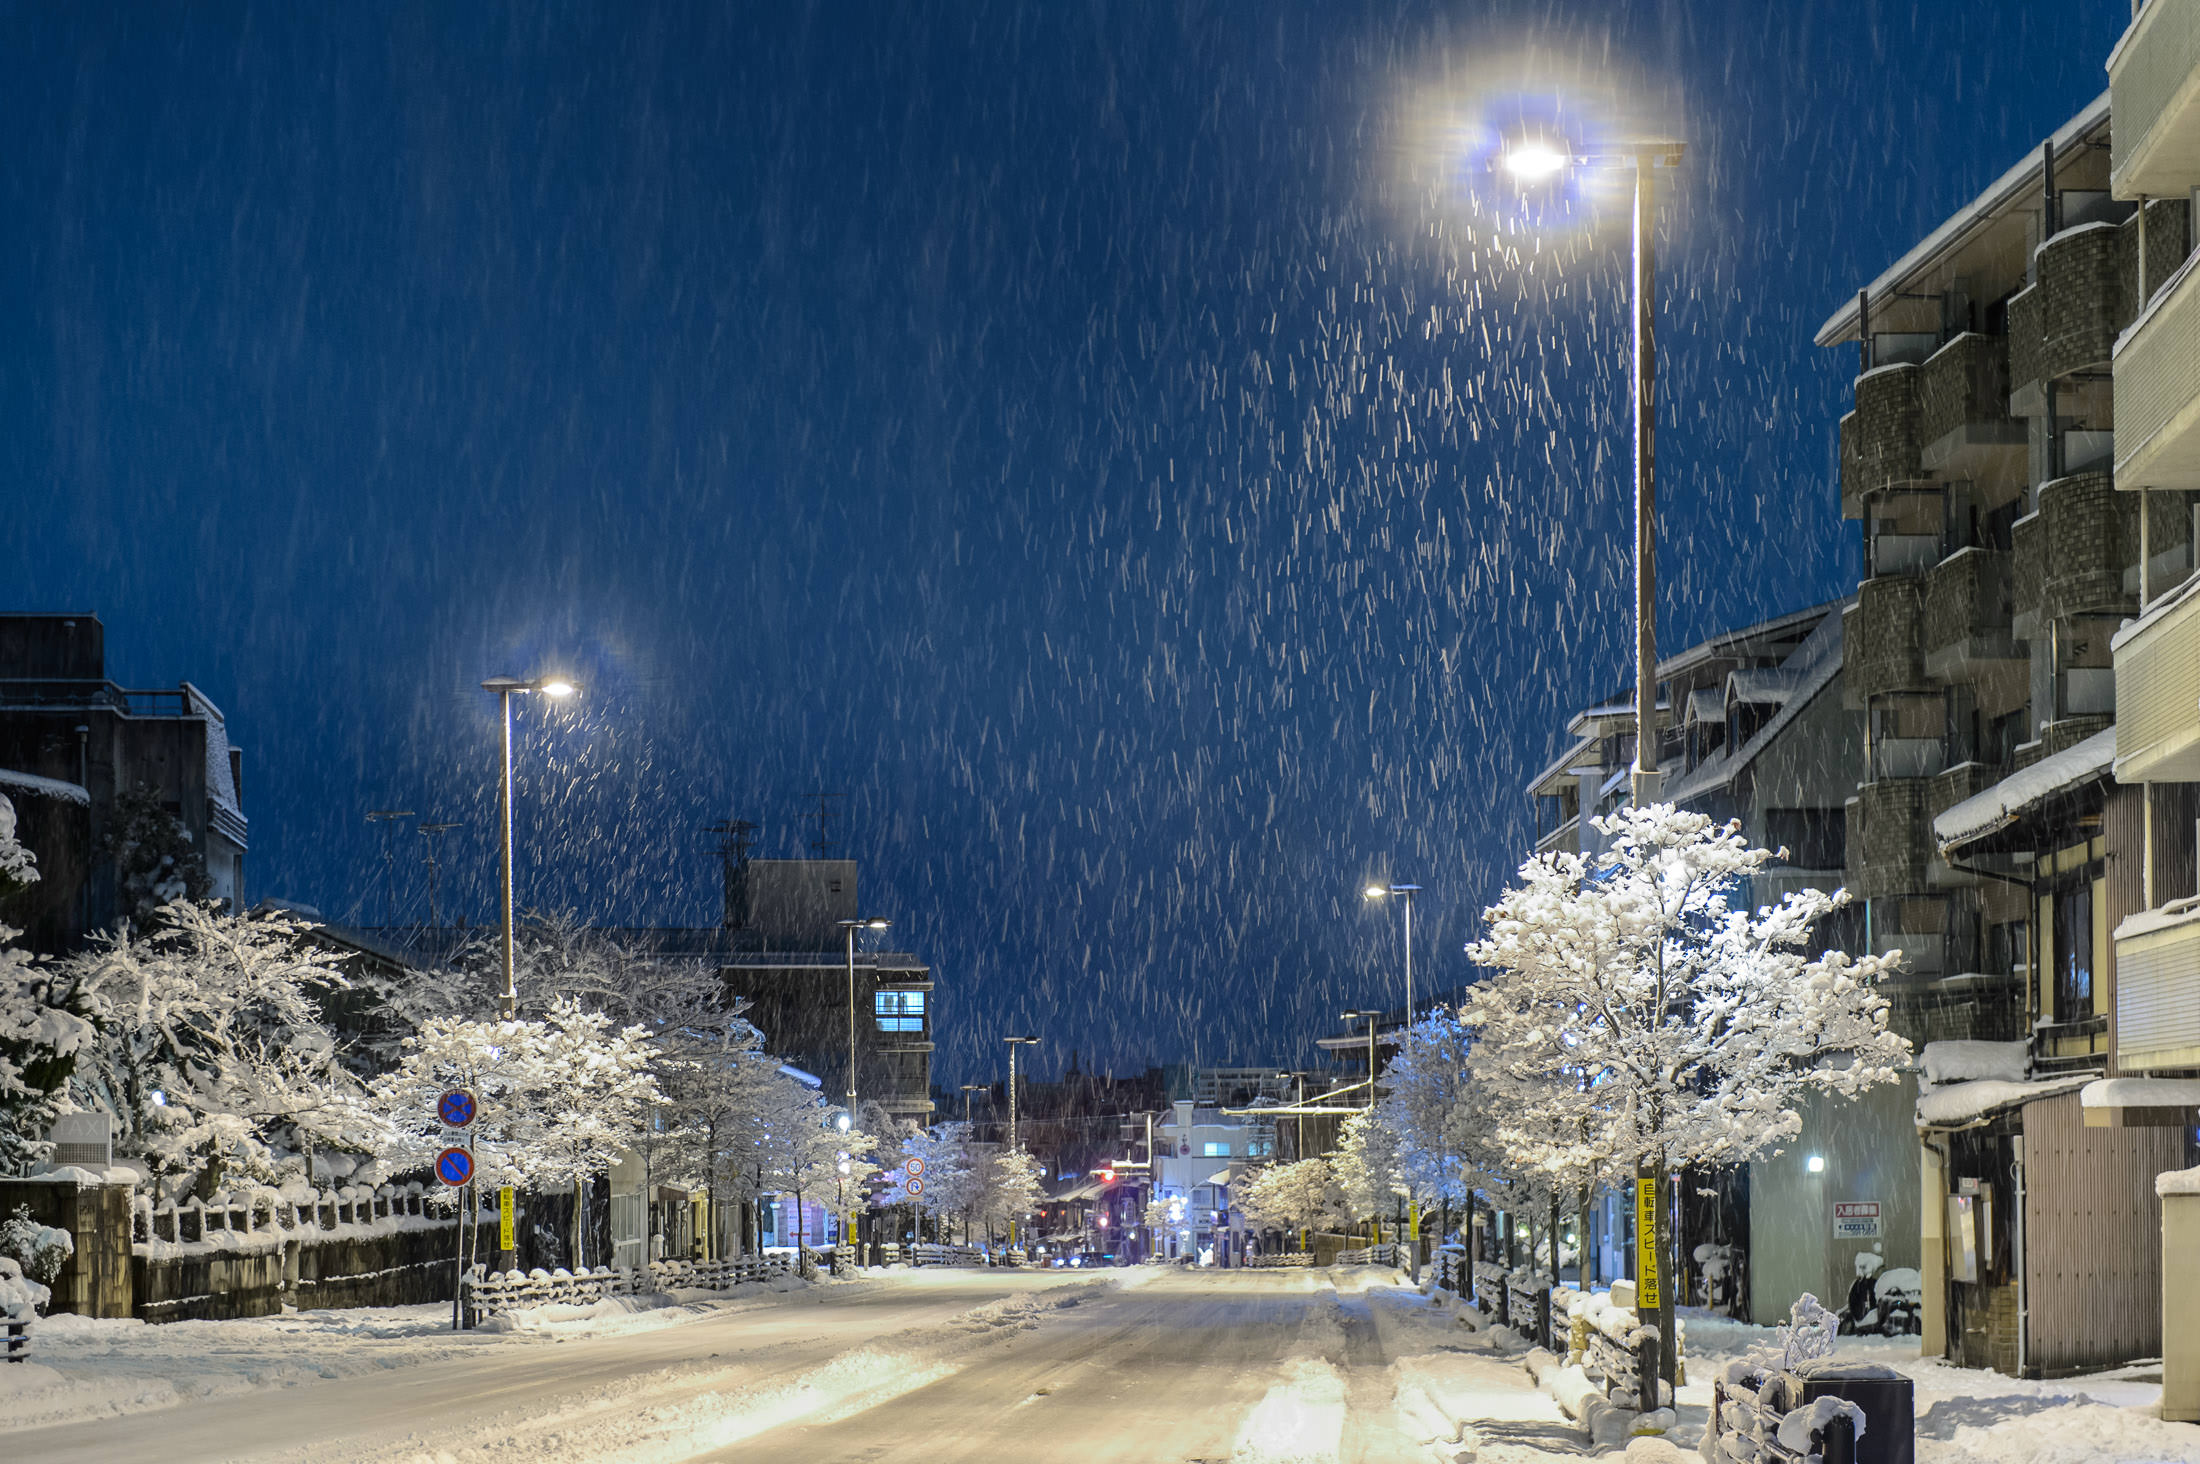 Japan Fall Colors Wallpaper Jeffrey Friedl S Blog 187 Kyoto At Night During A Heavy Snow